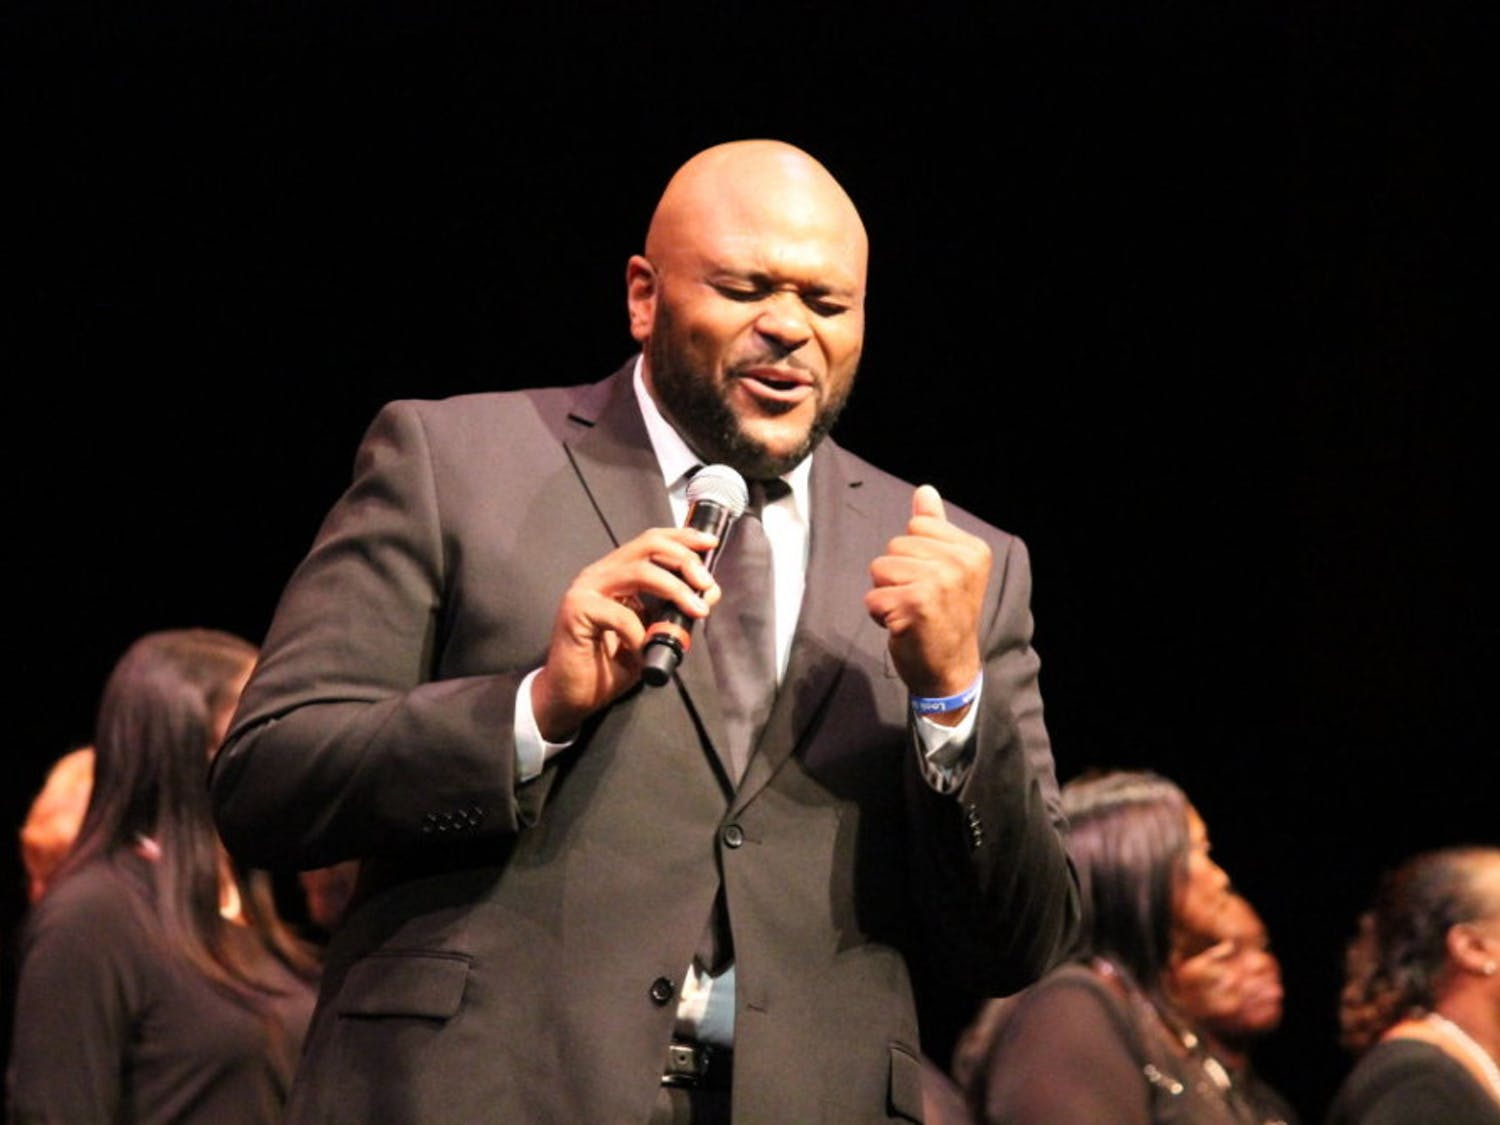 """Ruben Studdard, 36-year-old American Idol winner, sings """"Flying Without Wings"""" with local gospel choirs and Santa Fe students. """"Flying Without Wings"""" is the song that Studdard performed when he won American Idol in 2003."""